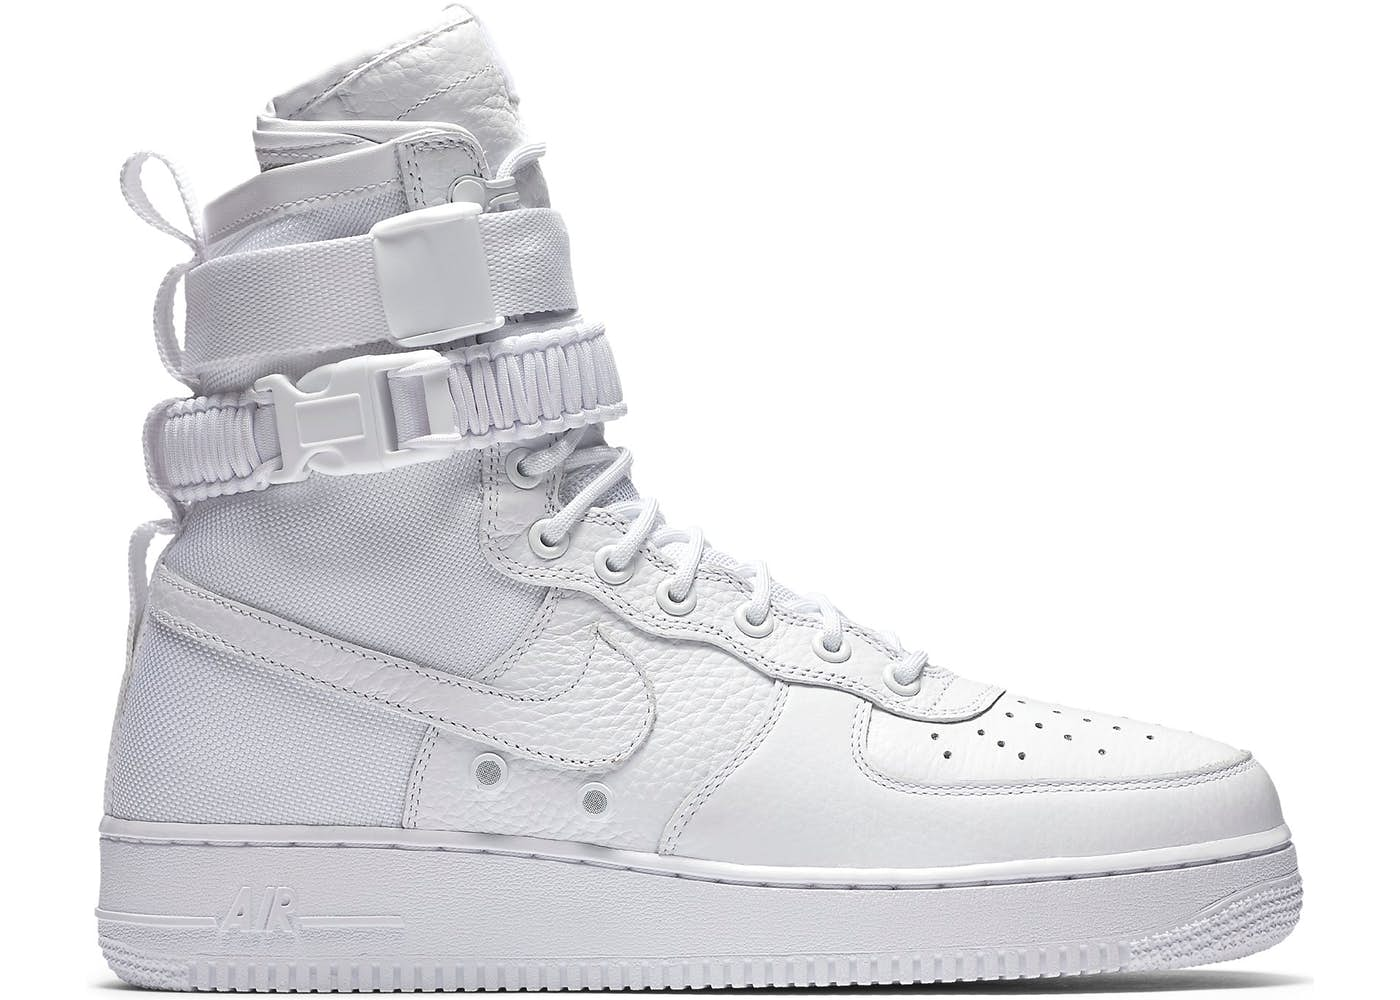 nike sf air force 1 high white 2017. Black Bedroom Furniture Sets. Home Design Ideas